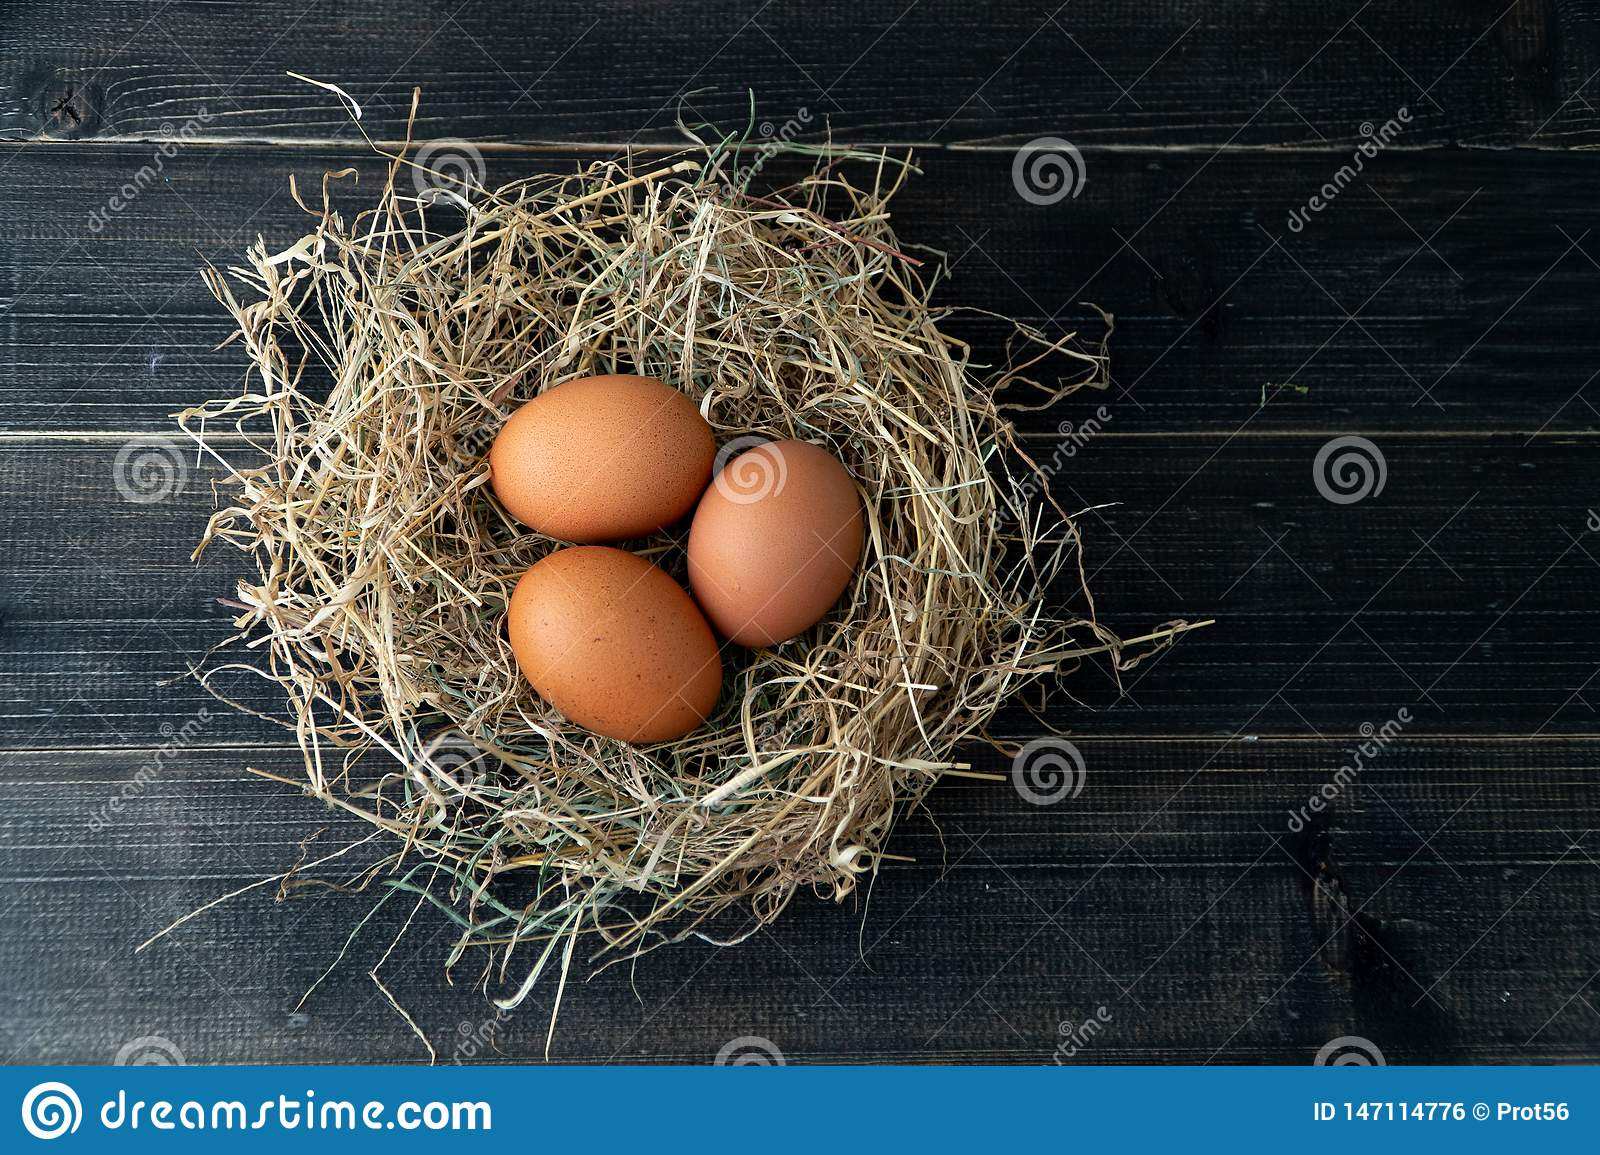 Fresh brown chicken eggs in hay nest on black wooden background. Concept of organic eggs, free space for text or other elements